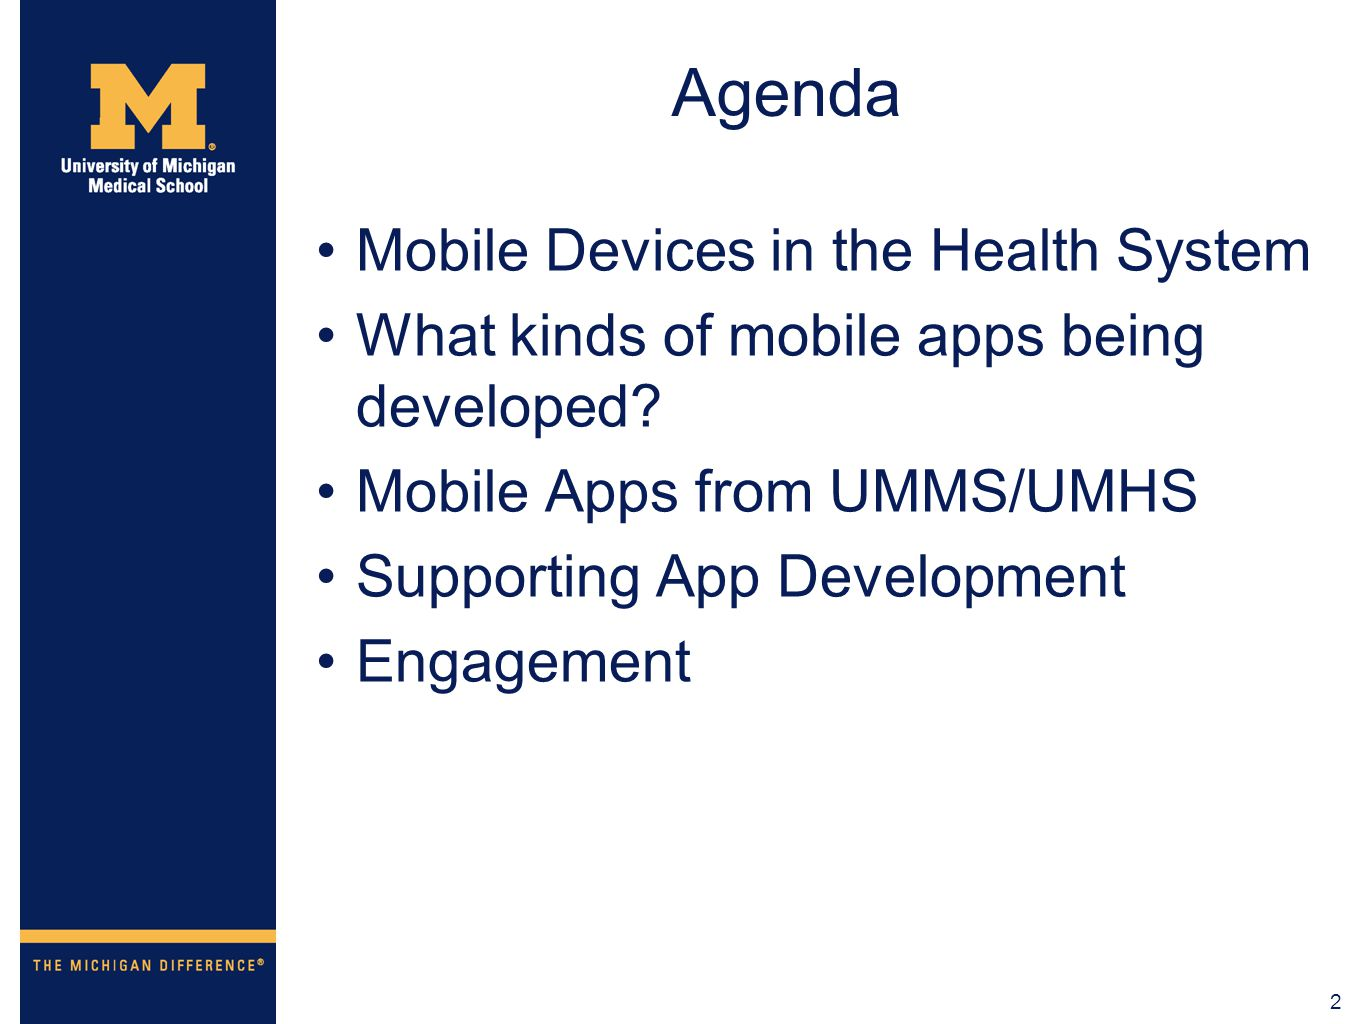 2 Agenda Mobile Devices in the Health System What kinds of mobile apps being developed? Mobile Apps from UMMS/UMHS Supporting App Development Engageme